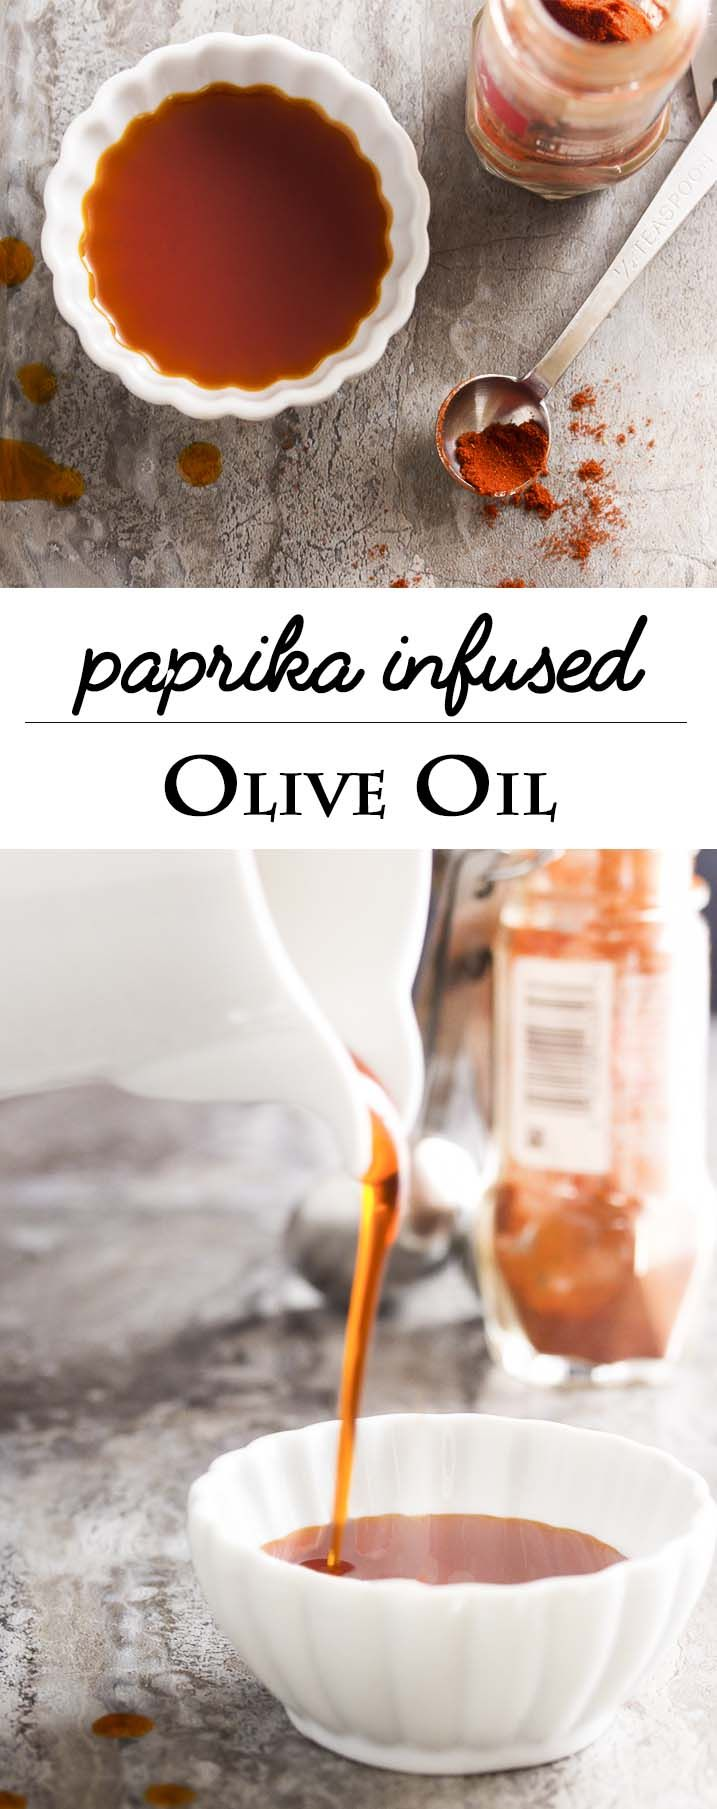 Quick and easy to make, paprika infused olive oil adds a great smokey flavor and colorful red garnish to all sorts of recipes. | justalittlebitofbacon.com